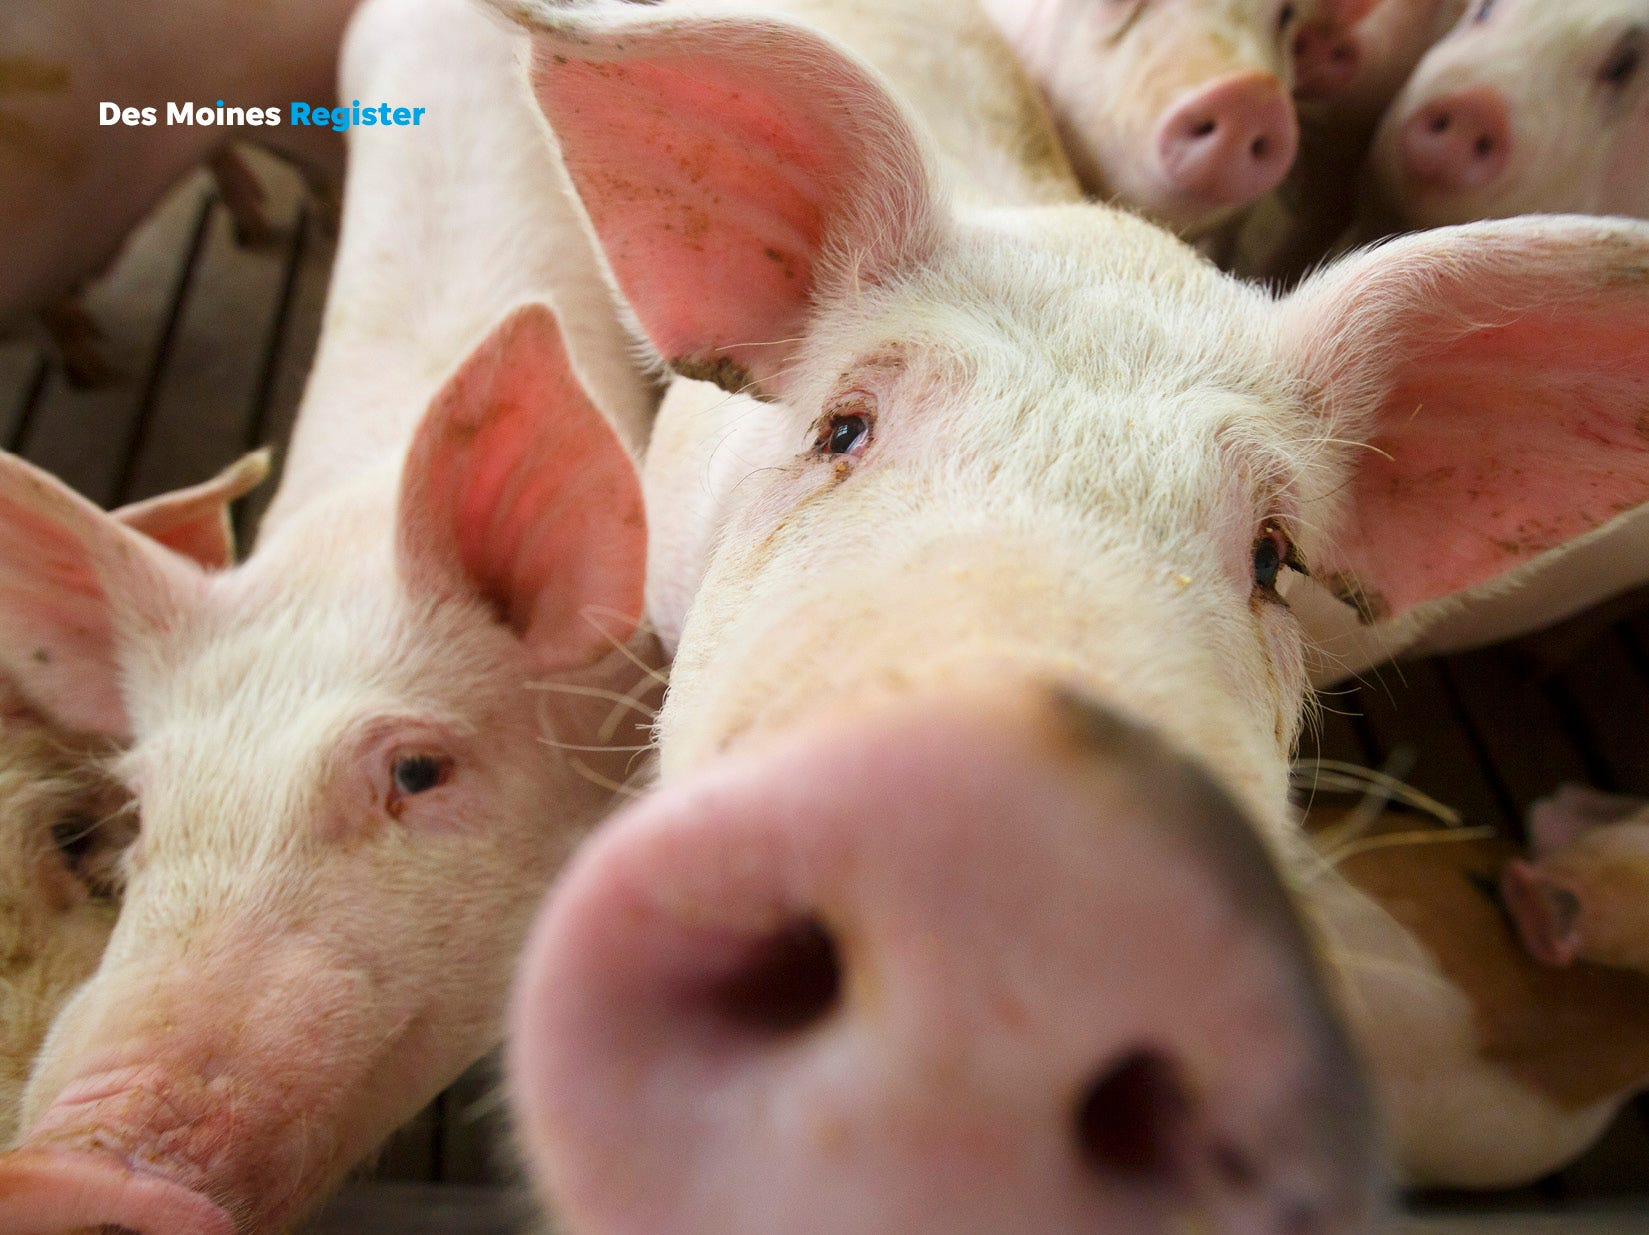 "<b>November: </b>Pigs from a concentrated animal feeding operation near Elma pose for the camera. The Register's 2019 photo calendar is available for $18 at <a href=""https://shopdmregister.com/collections/photo-gifts/products/2019-des-moines-register-photo-calendar?utm_source=desmoinesregister&utm_medium=link&utm_campaign=launch_gallery"" target=""_blank"">ShopDMRegister.com. </a>"